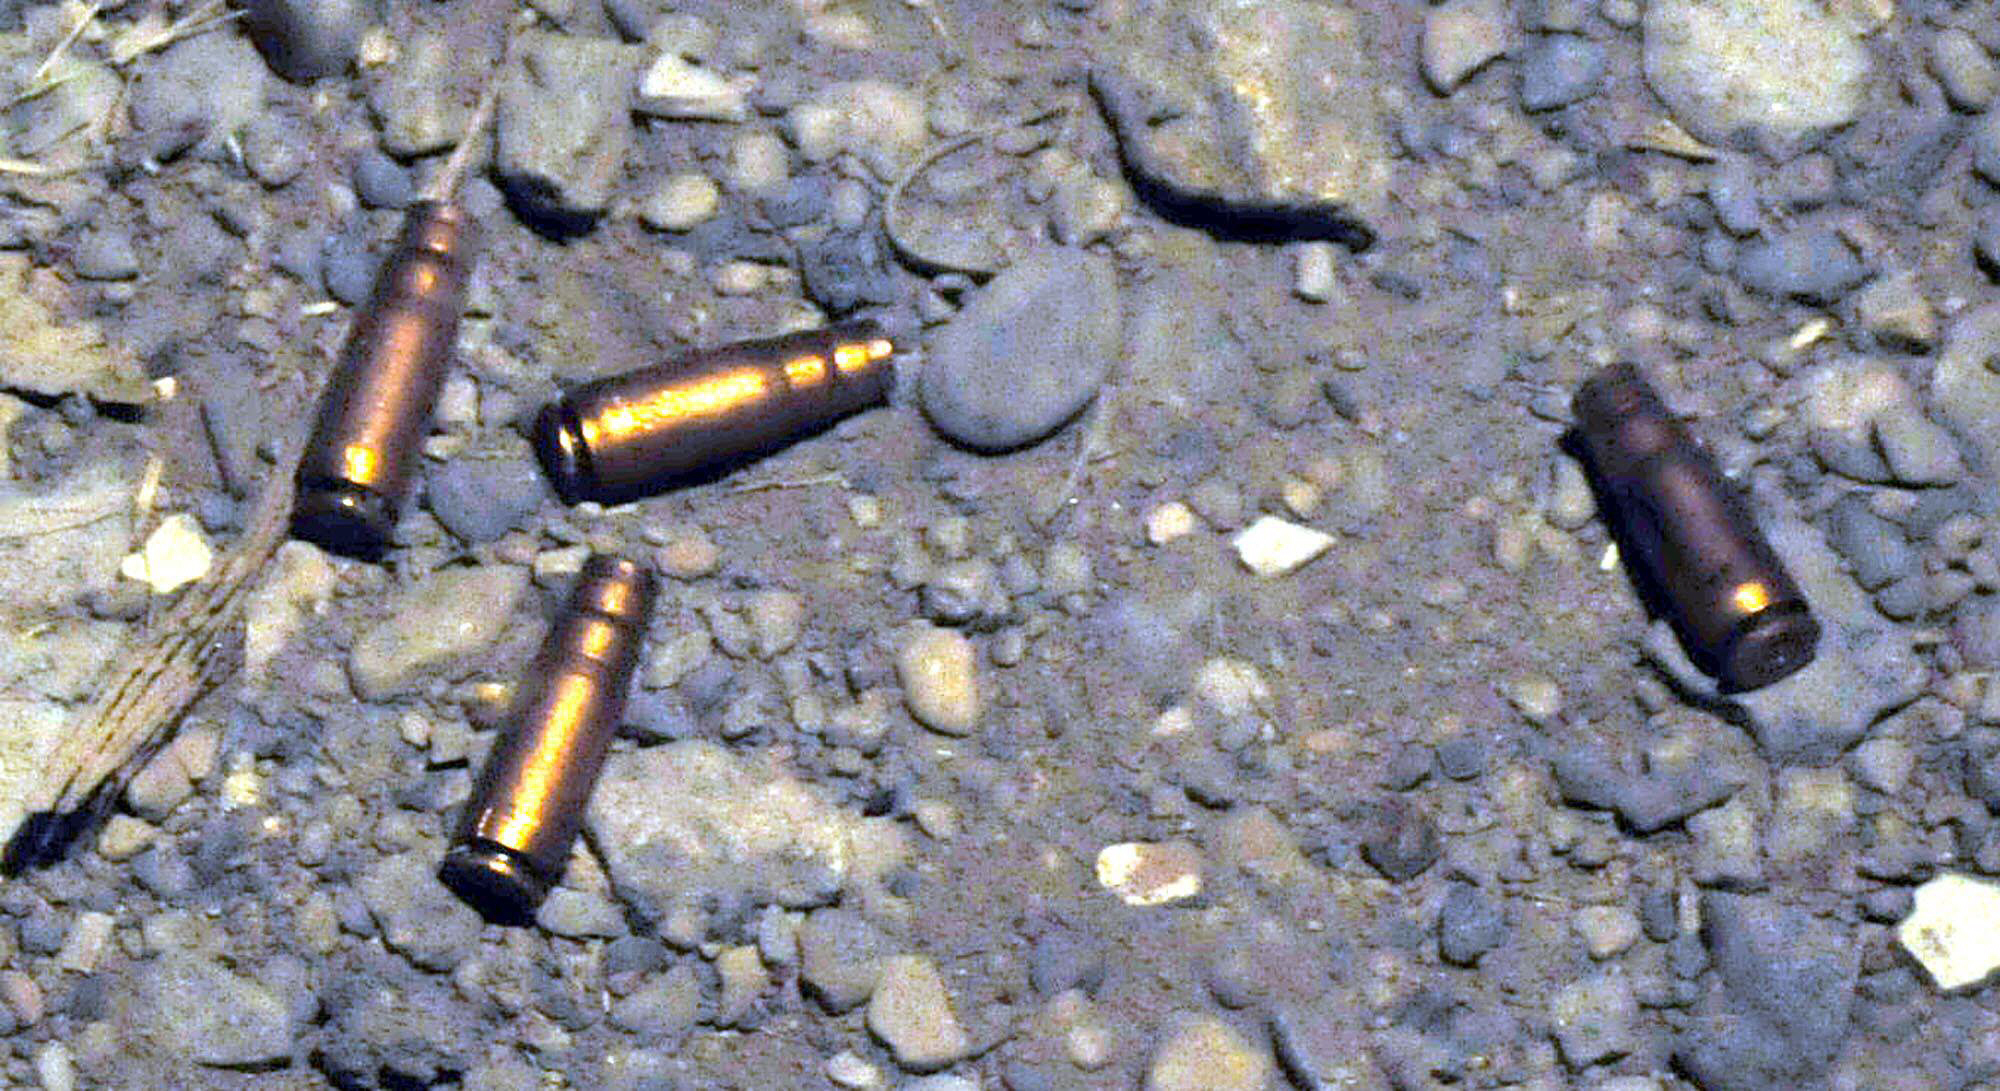 bullets-target-killing-murder-shot-killed-photo-mohammad-saqib-2-2-2-3-3-2-2-2-2-2-2-2-2-2-2-2-2-2-4-2-2-2-2-2-2-2-4-3-2-2-2-2-3-2-2-2-2-2-2-3-2-2-3-3-2-4-3-2-2-2-2-3-3-3-2-2-2-2-2-3-3-2-3-3-2-2-2-70